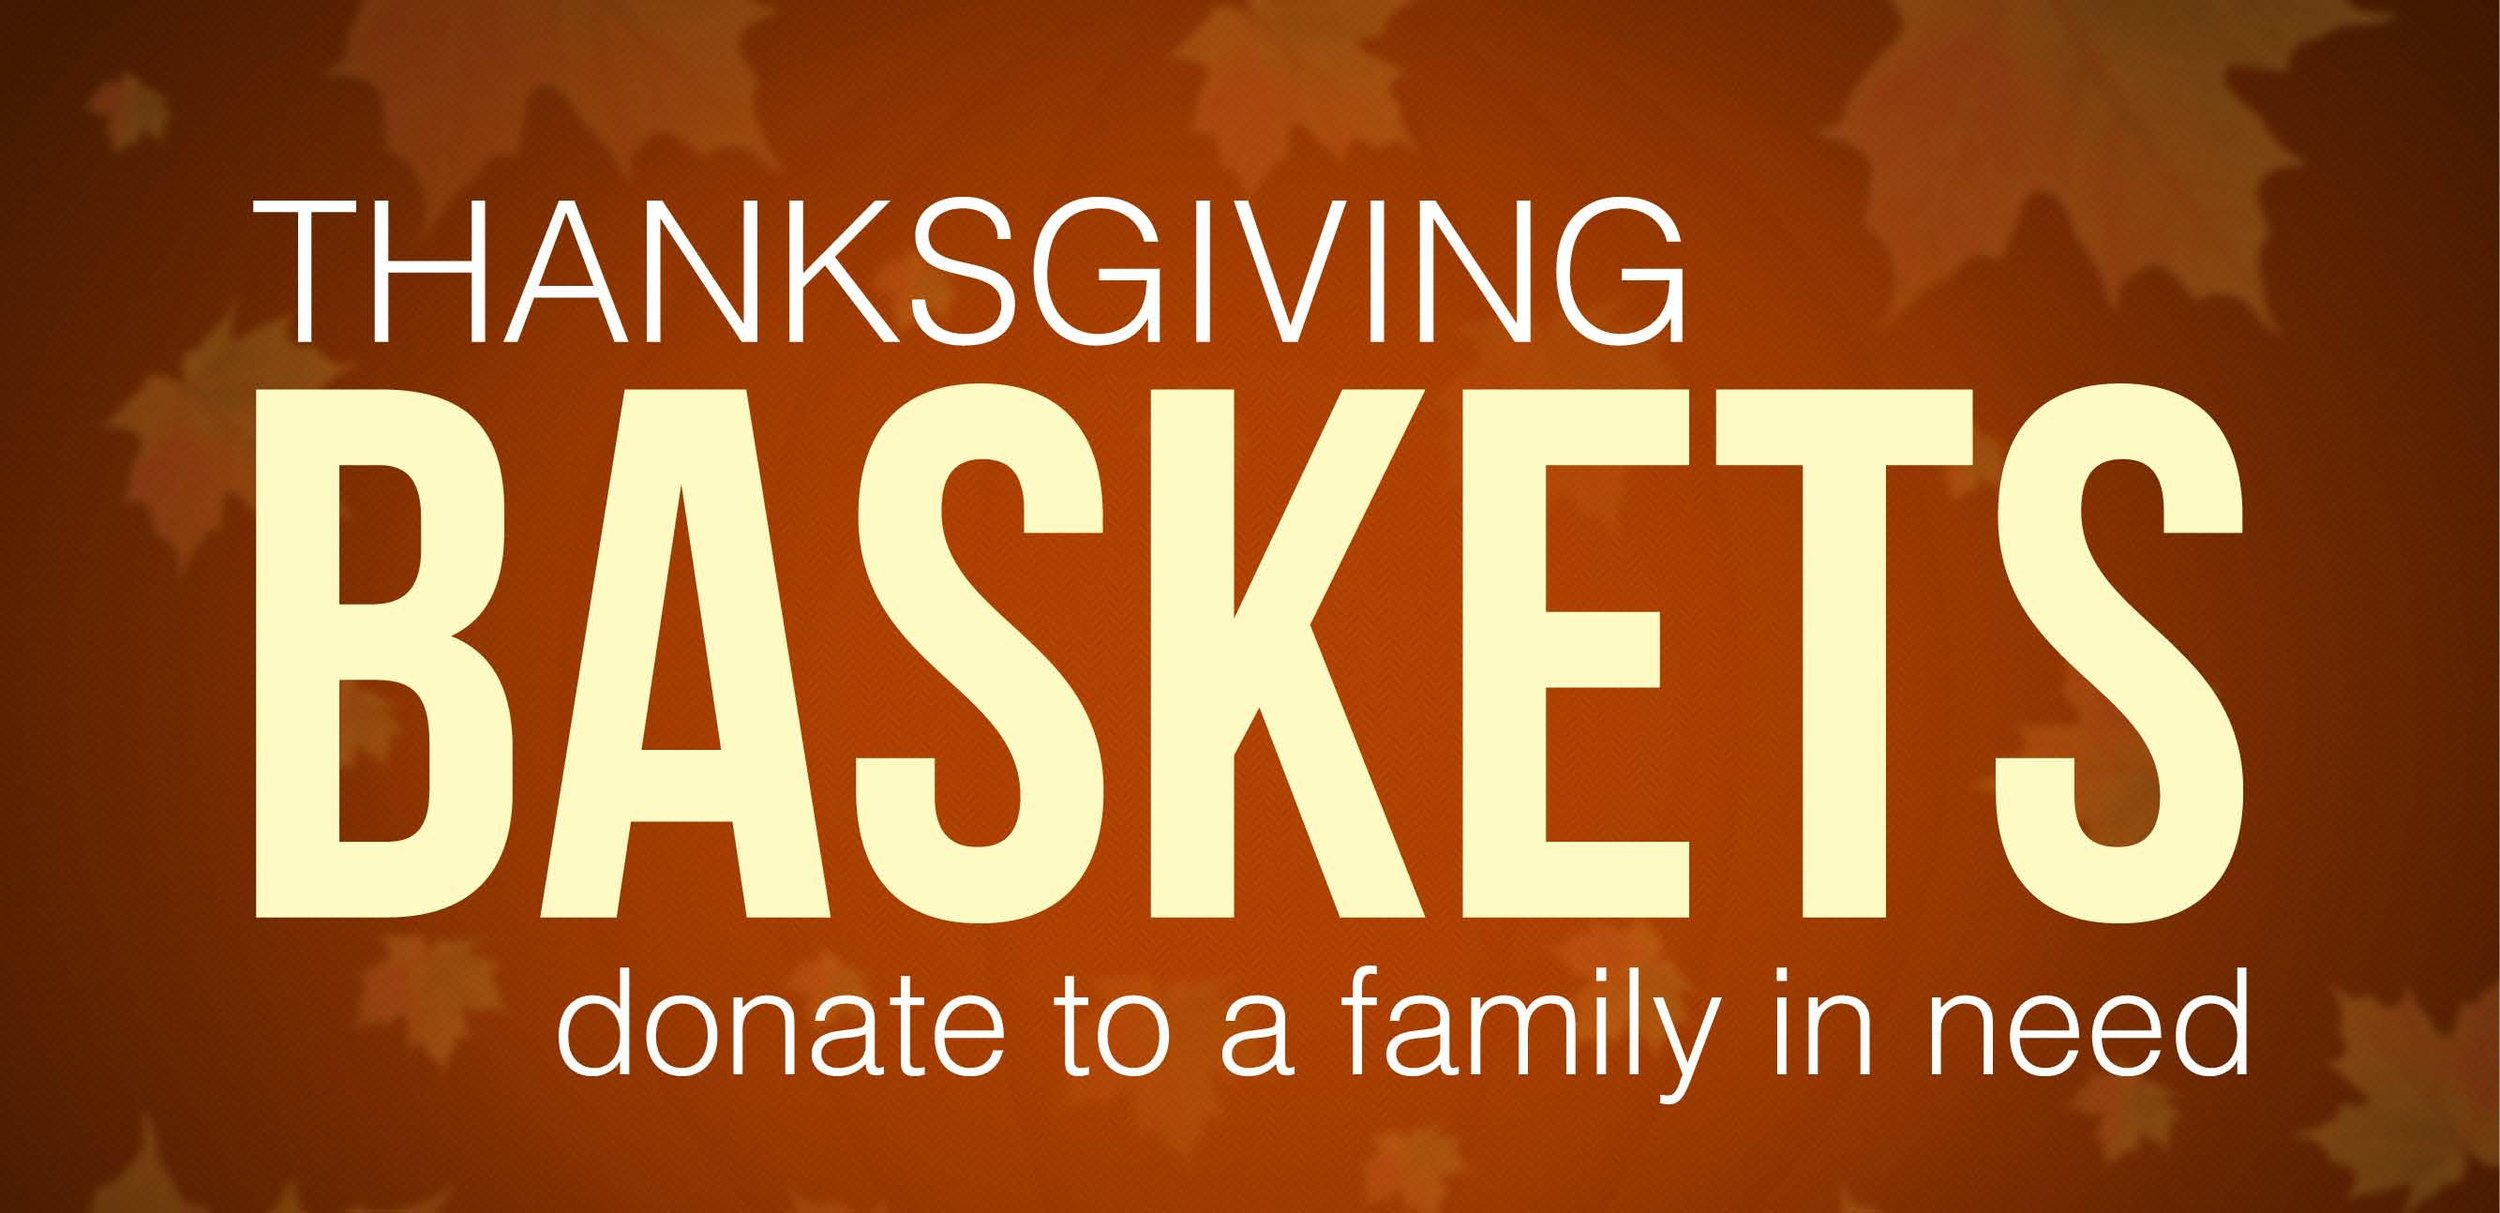 Thanksgiving-Baskets_2012.jpg